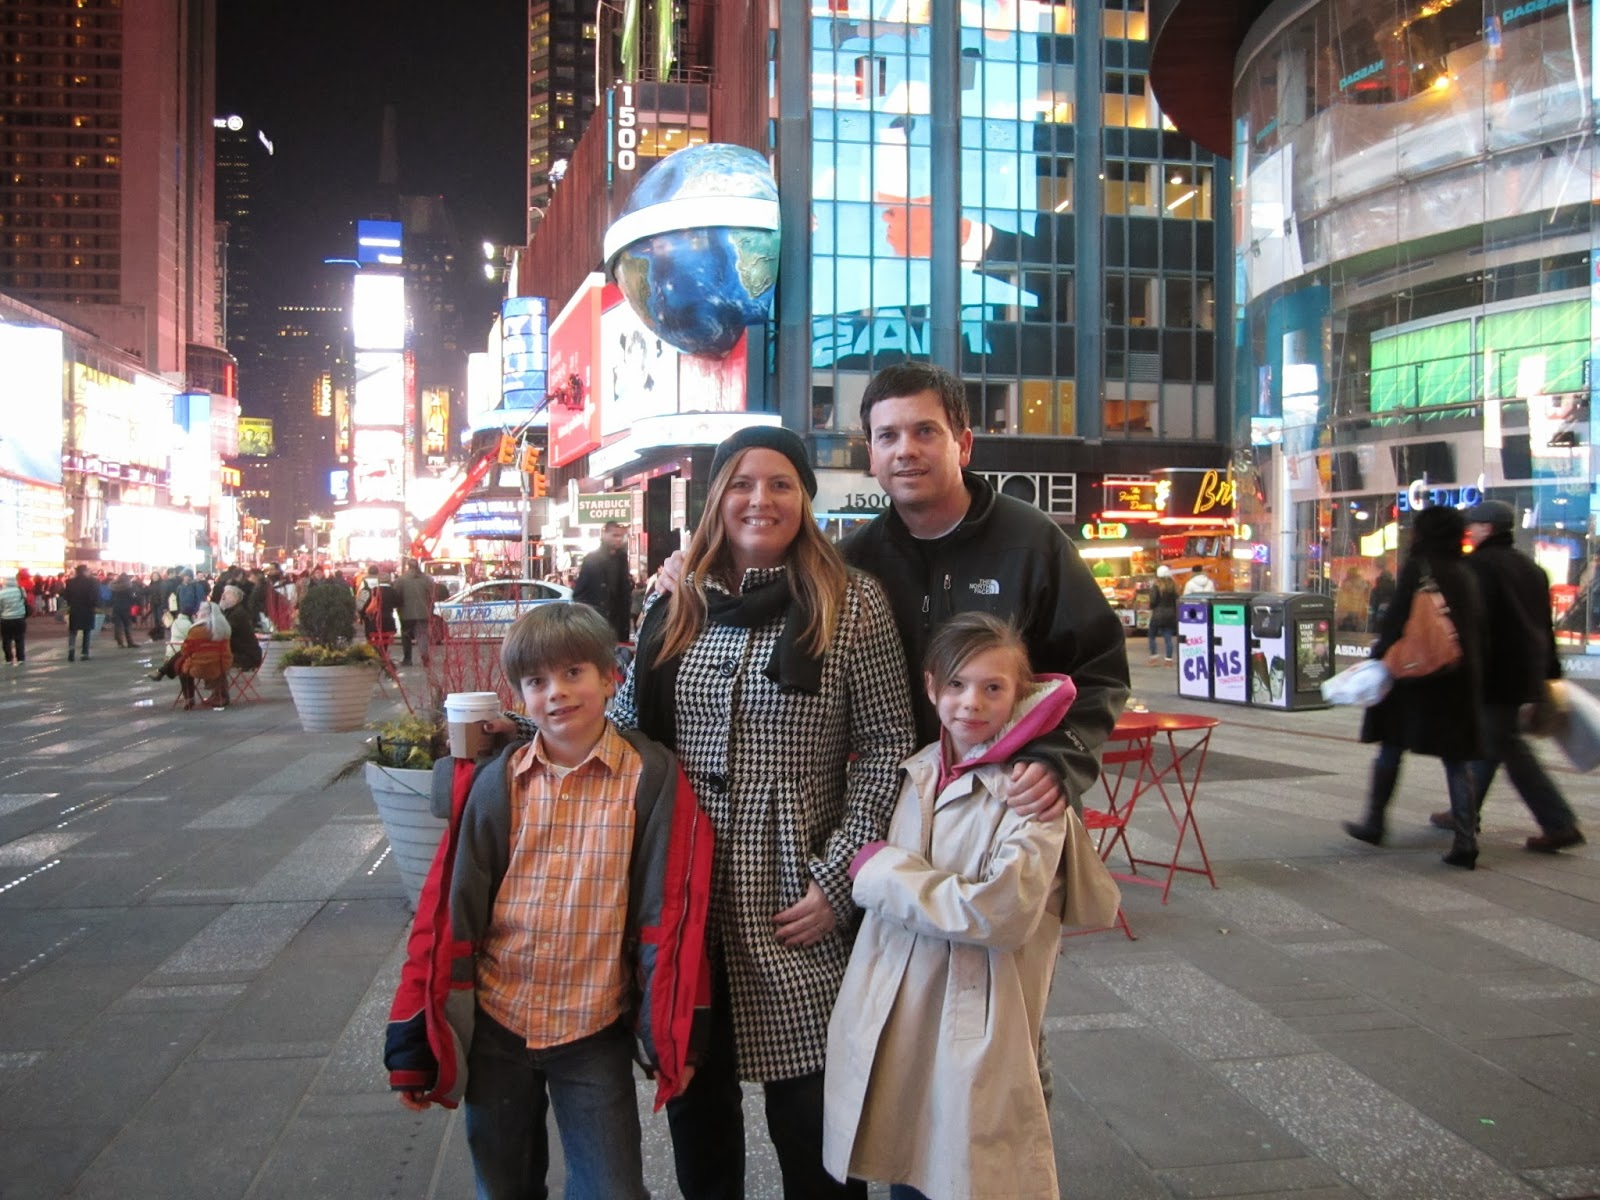 times square, family smiling, new york city